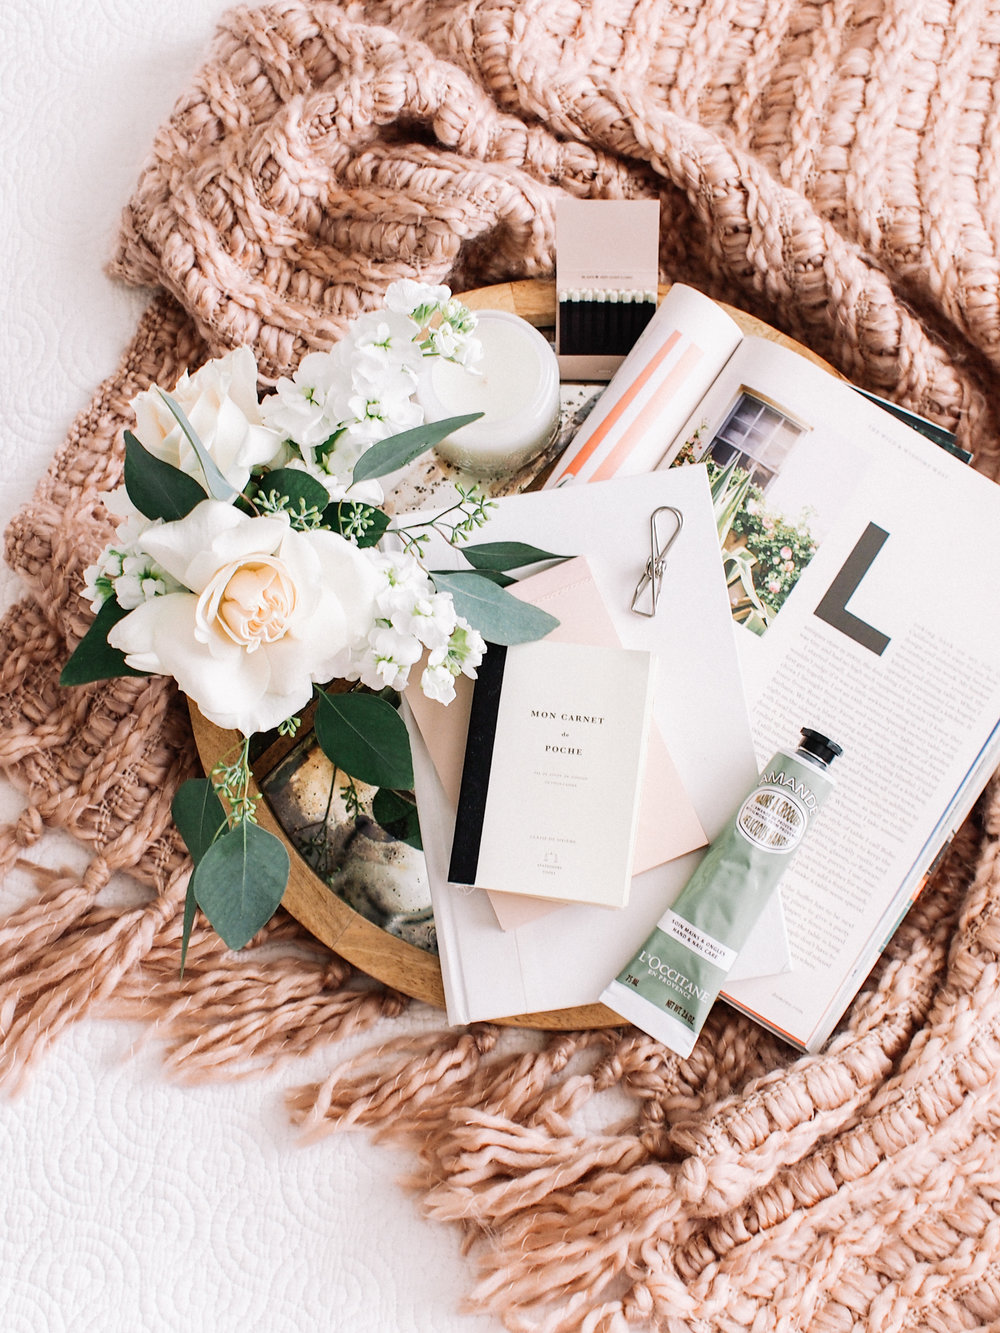 What to stock your guest room with for Holiday guests | A Fabulous Fete